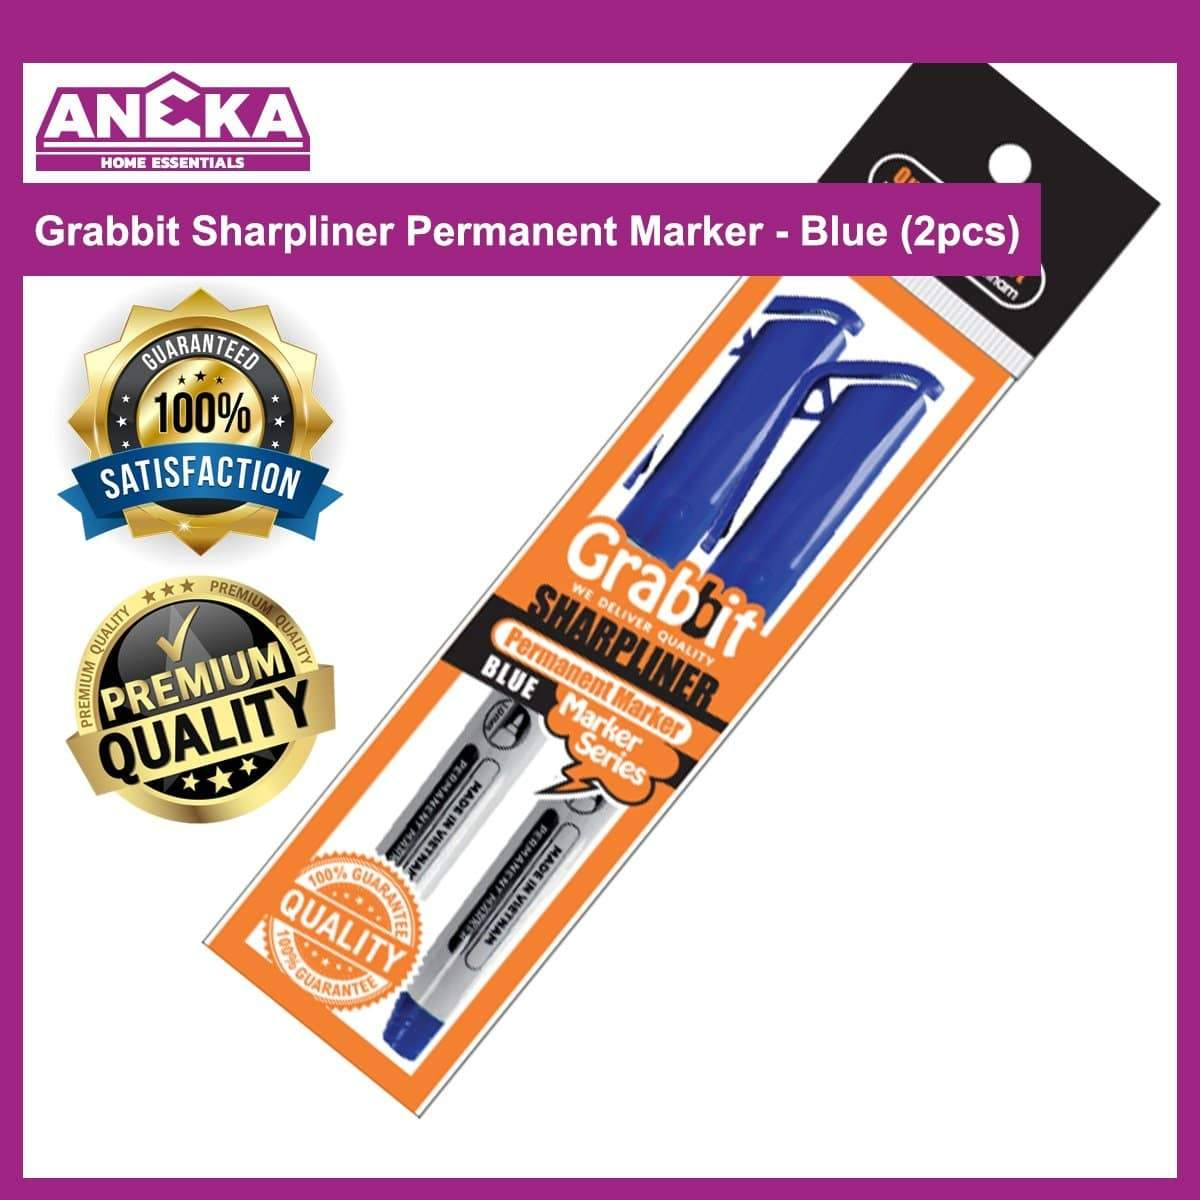 Grabbit Sharpliner Permanent Marker - Blue (2pcs)